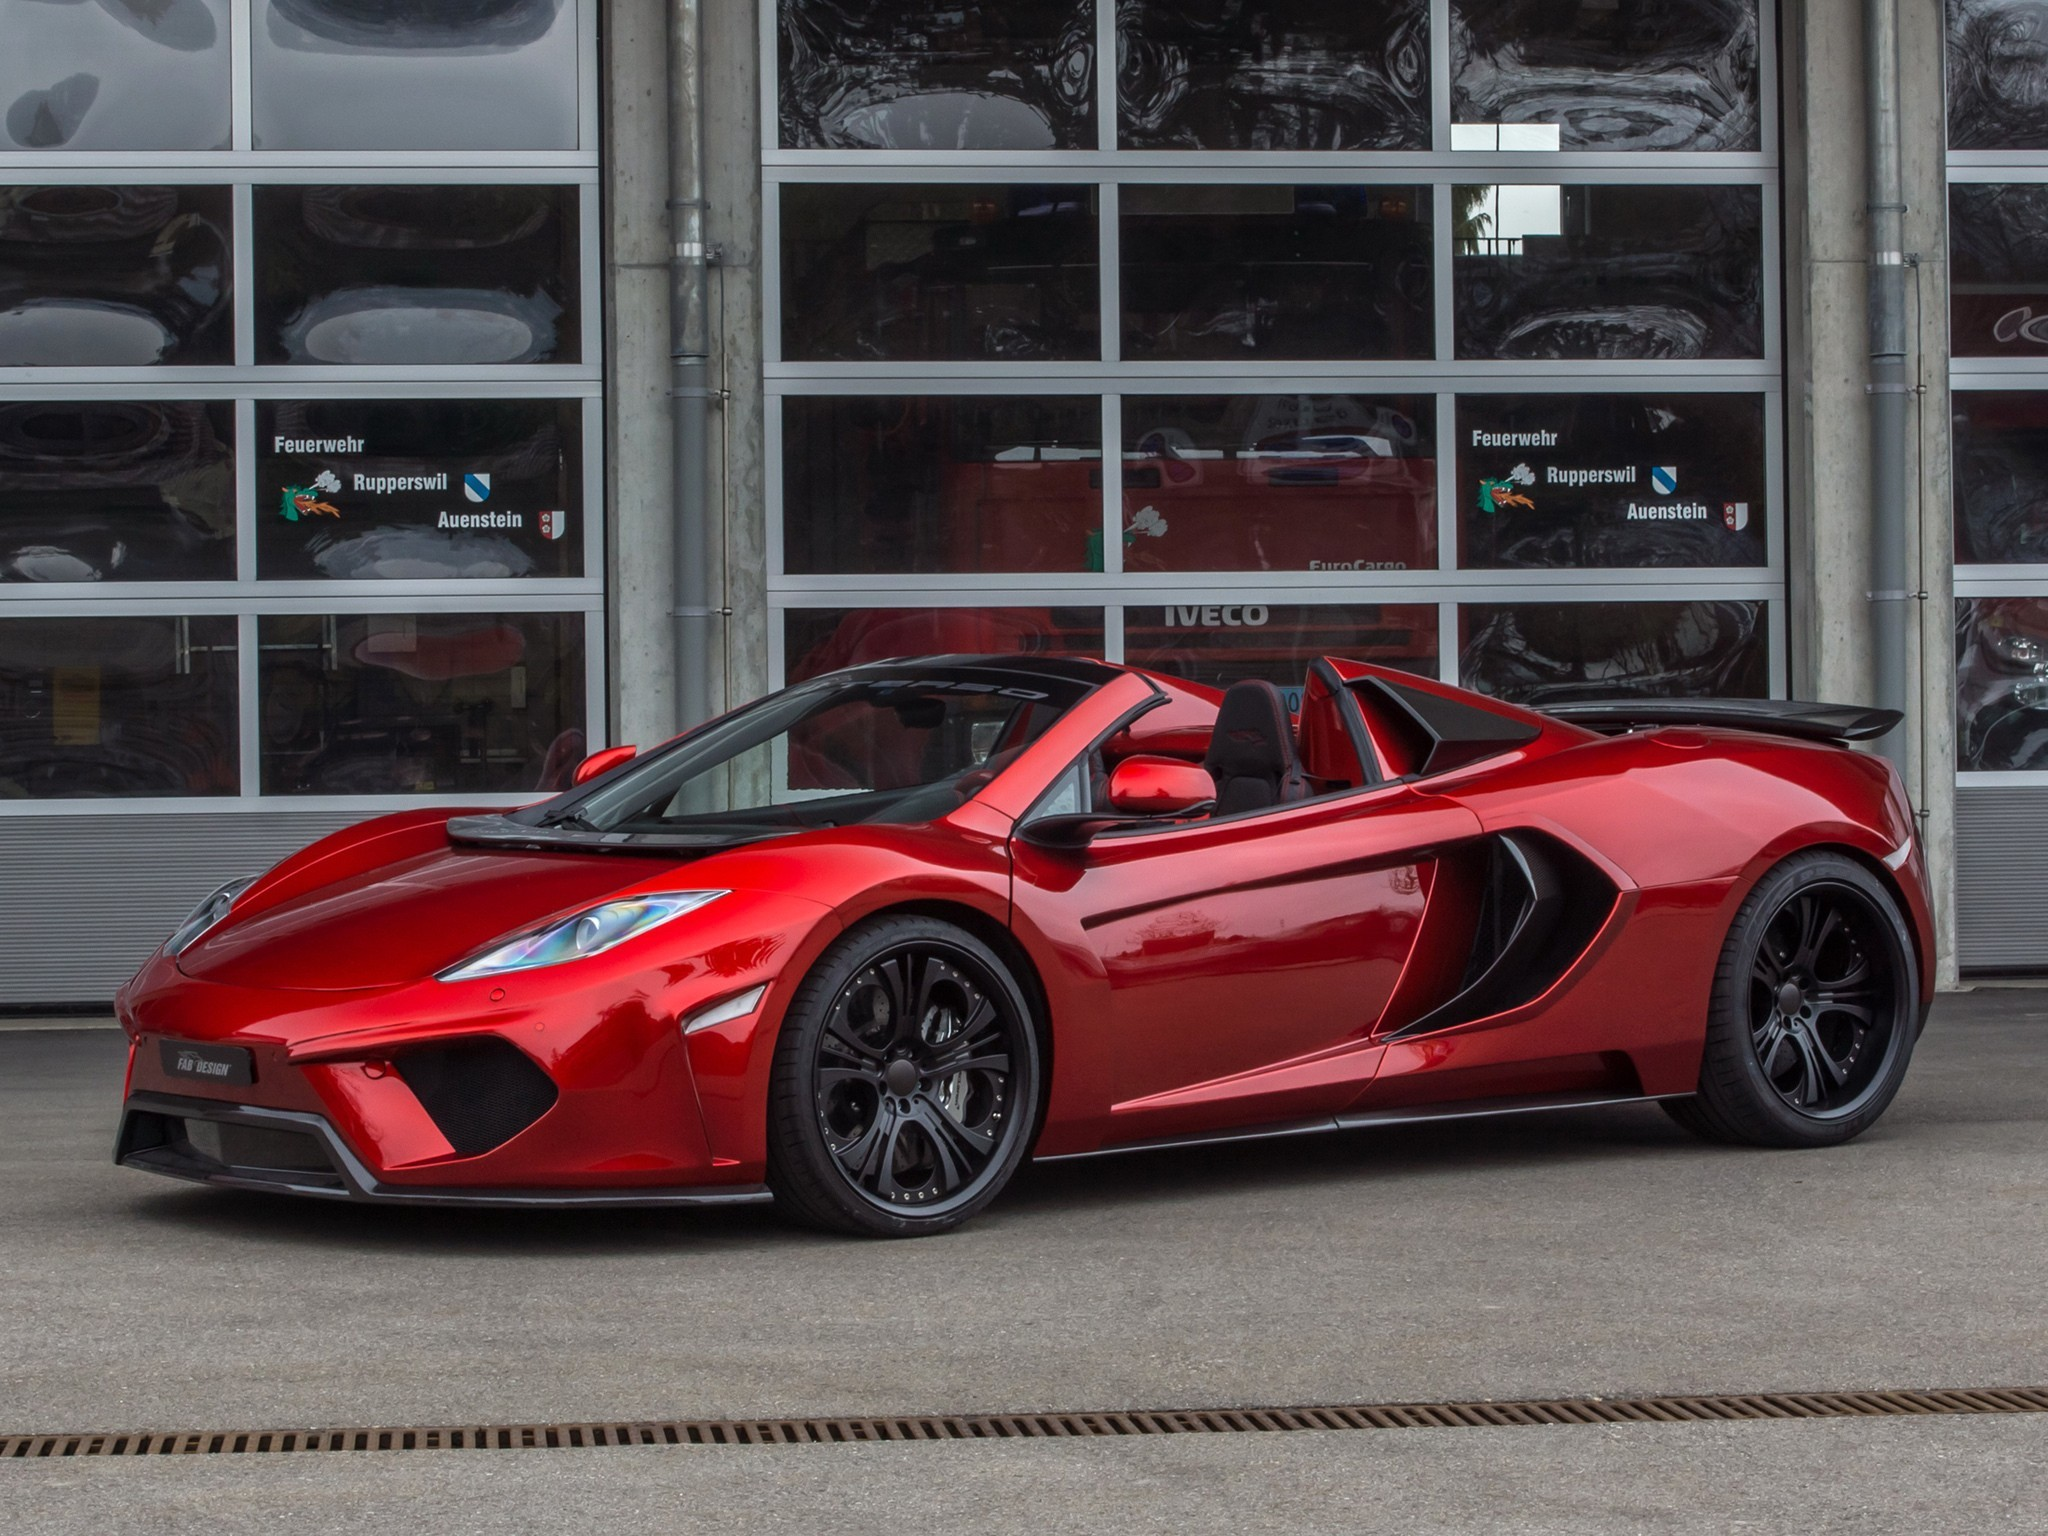 Super Car 5760x1080 Wallpaper Sports Car Car Mclaren Mp4 12c Wallpapers Hd Desktop